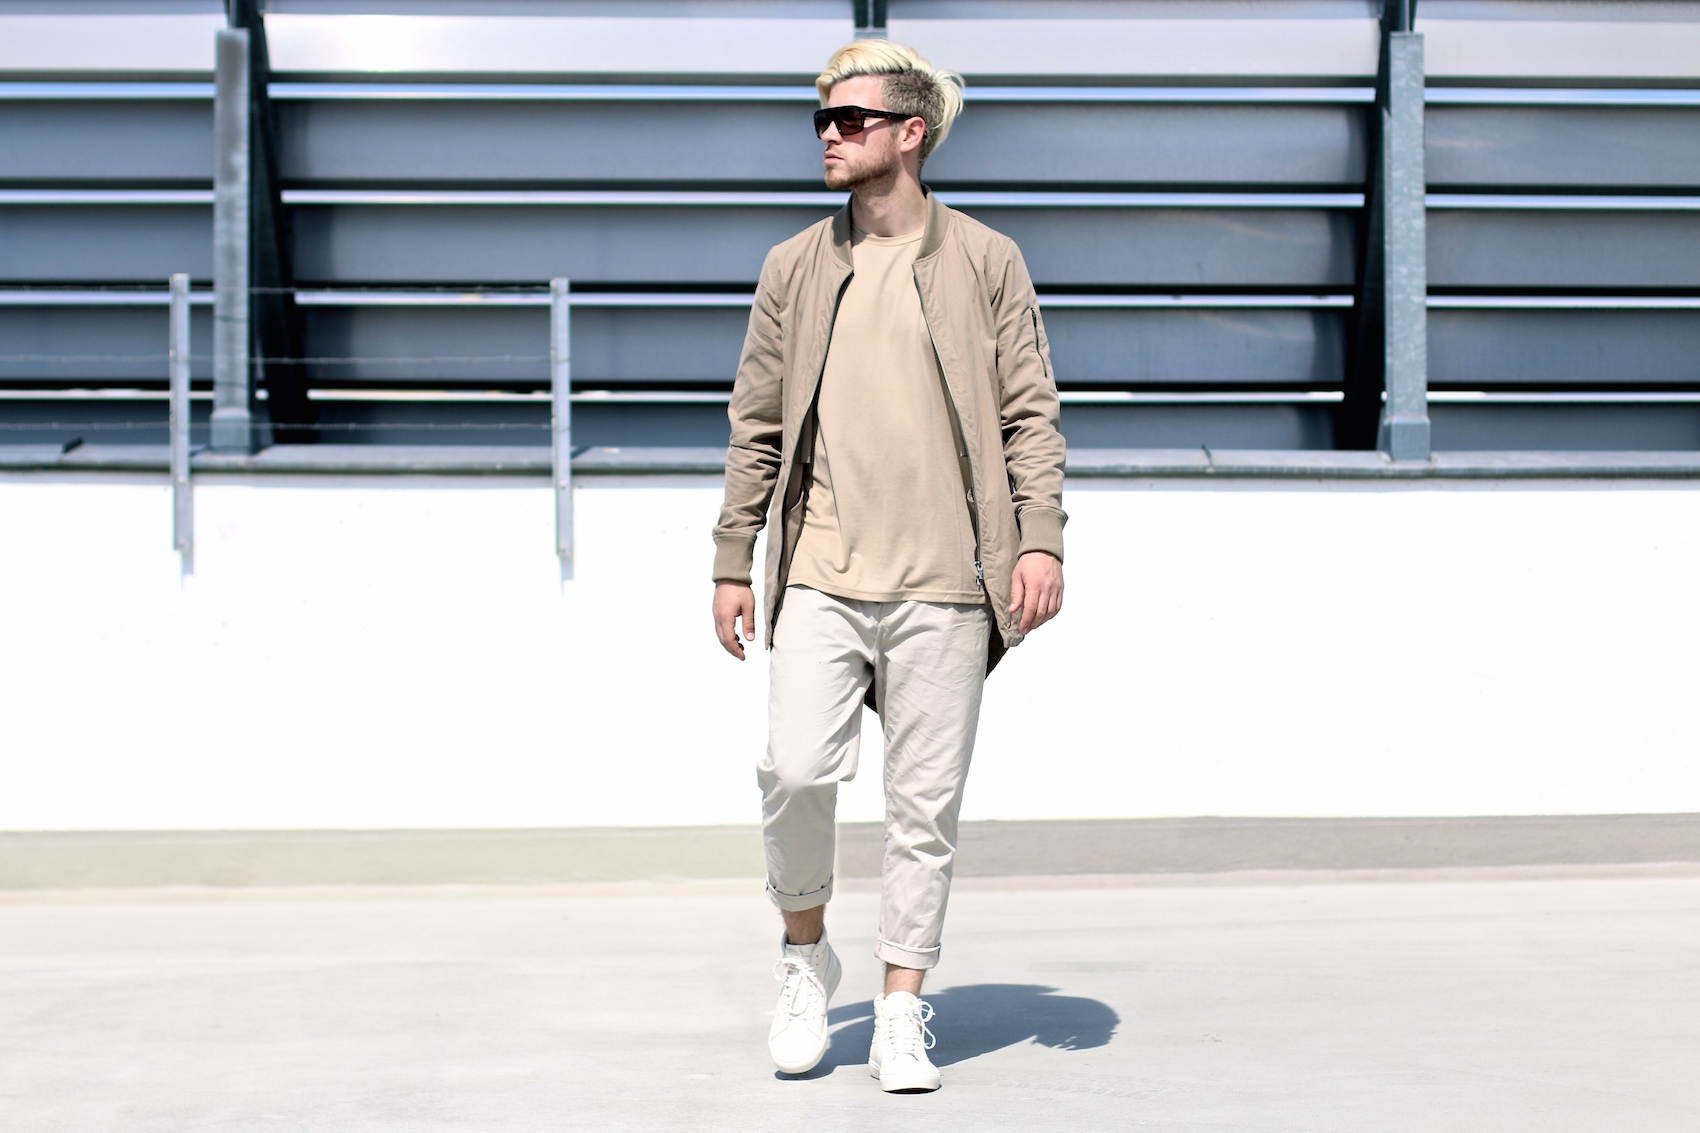 Outfit Combining Neutral Colors